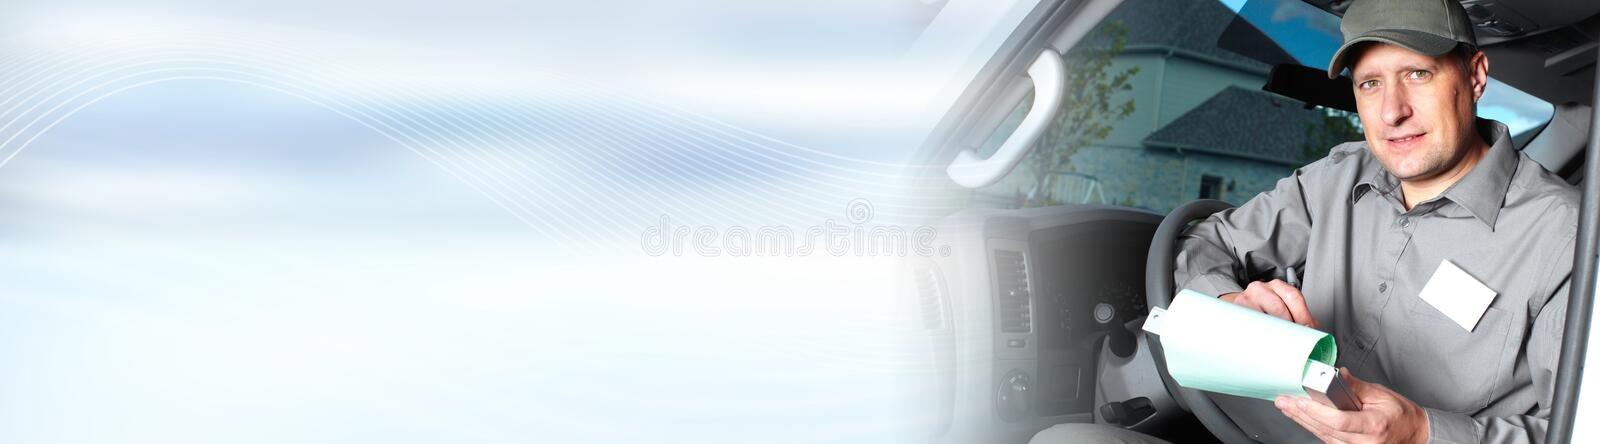 Truck driver. Driver of delivery company truck man composite image background royalty free stock images